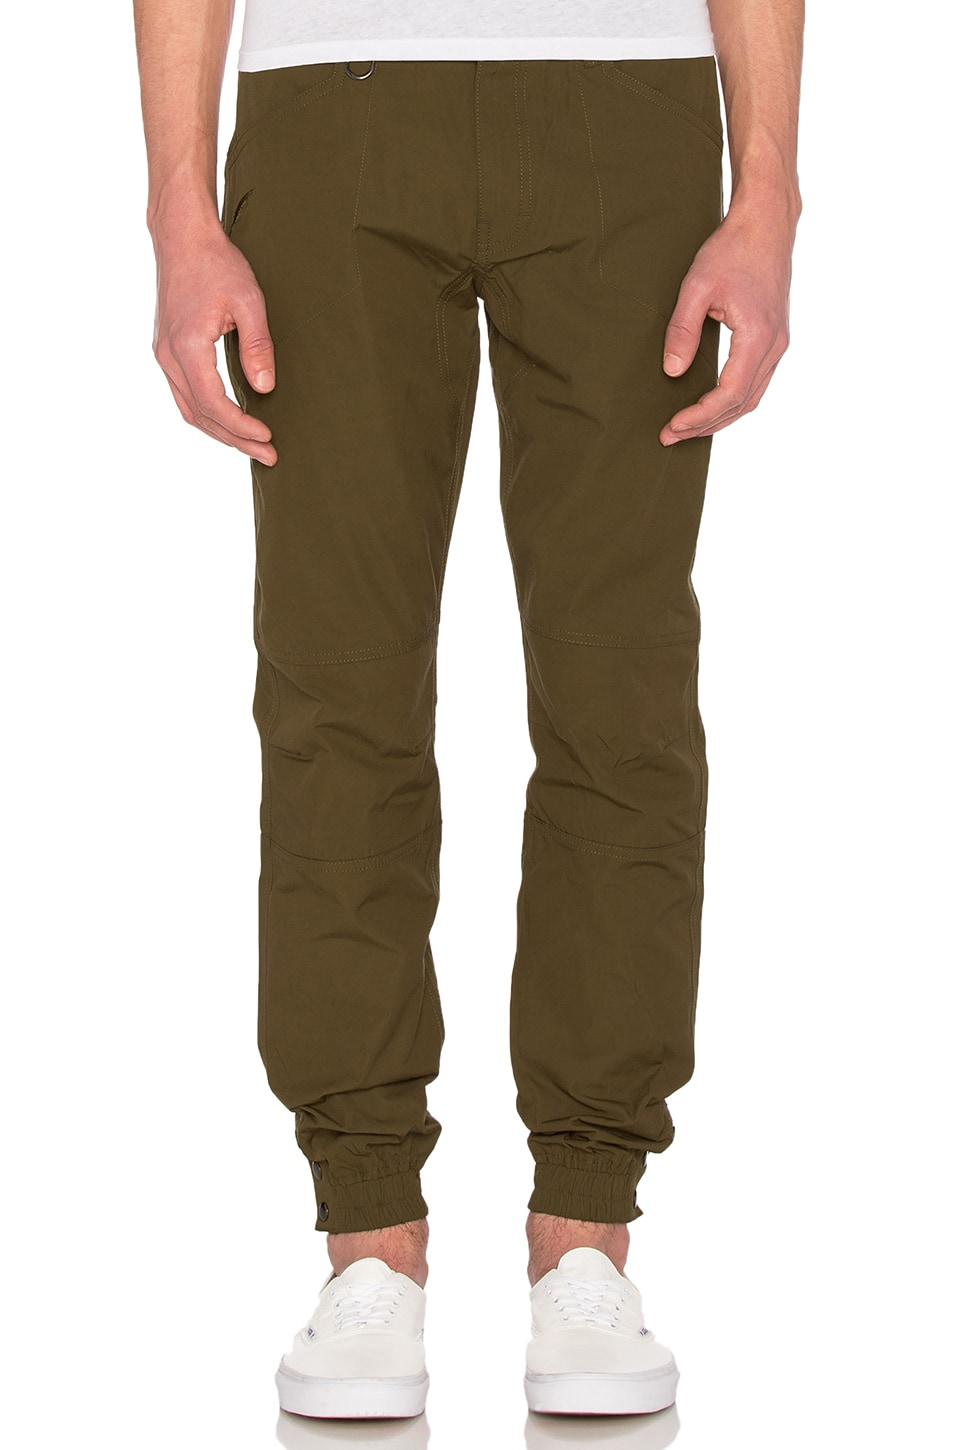 Photo of Maverick Joggers by Publish men clothes